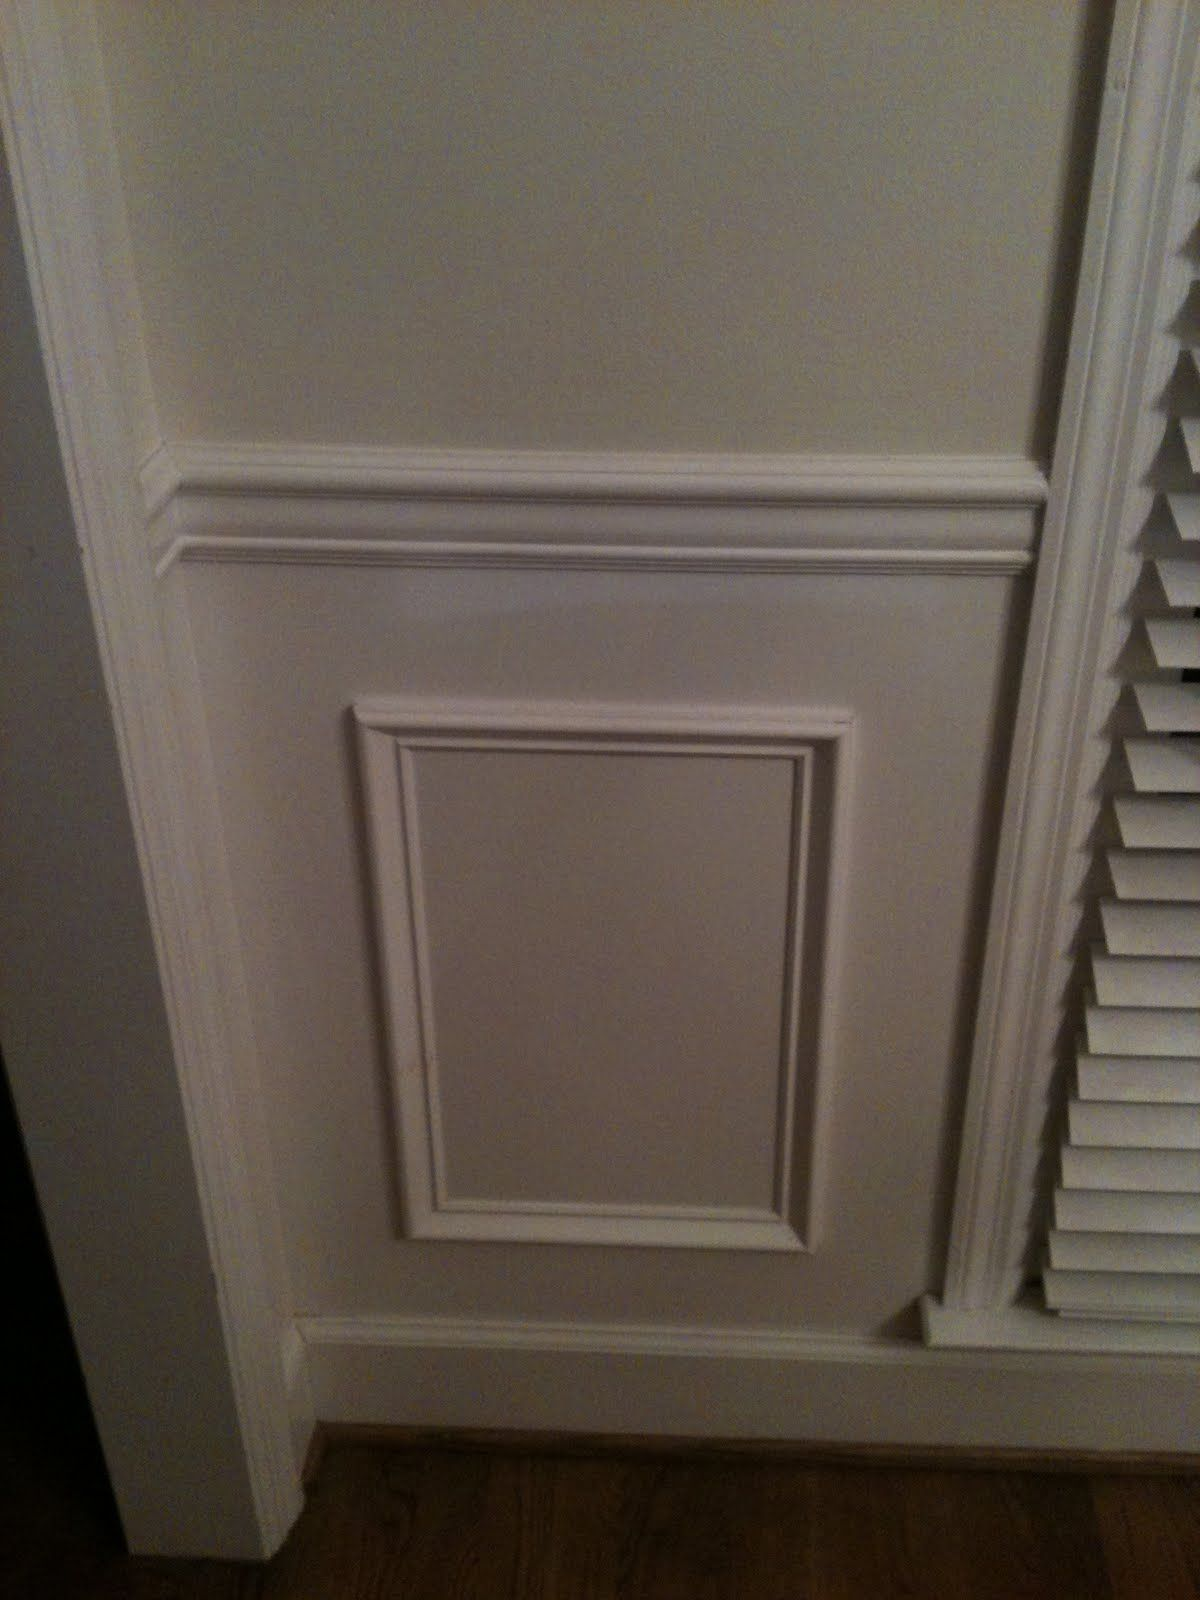 Chair Rail Molding Under Chair Rail Home Redecorating Pinterest